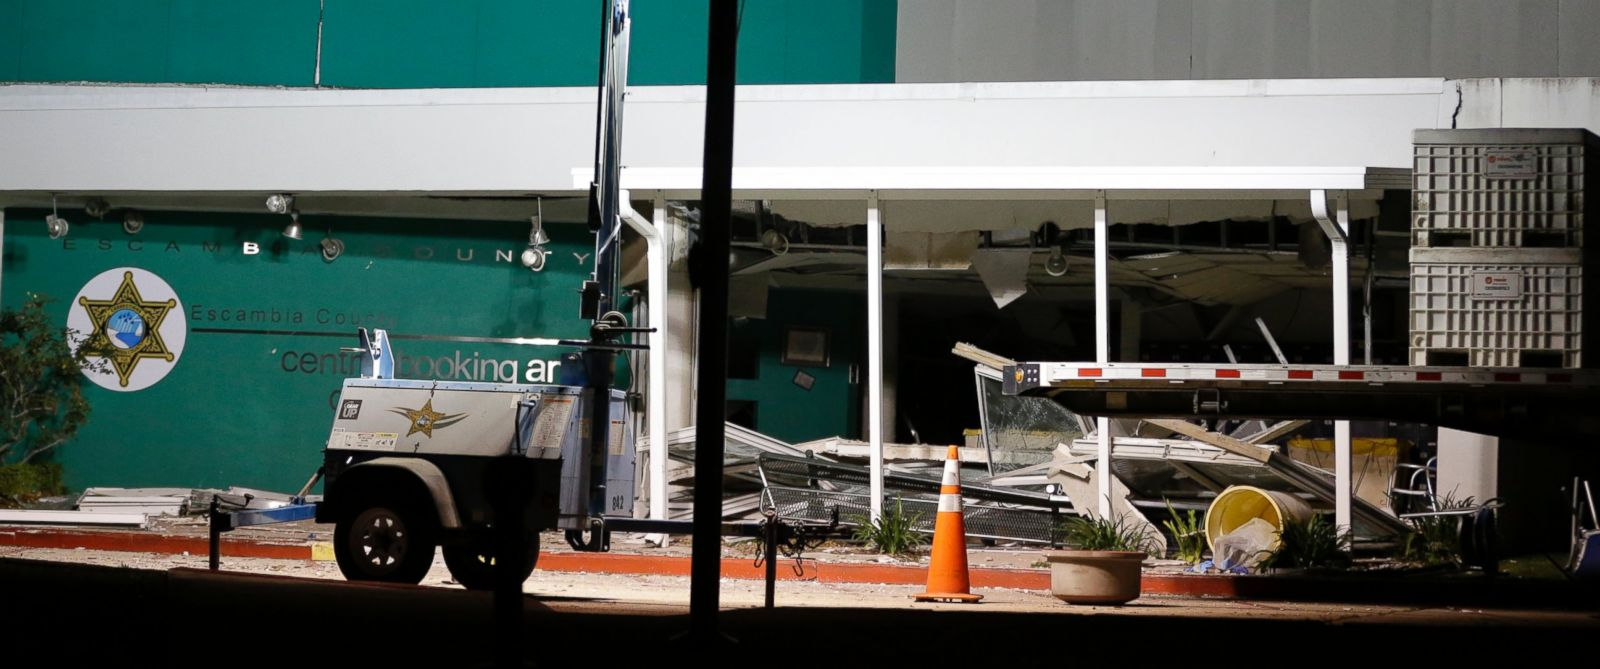 PHOTO: Damage to the Escambia County Jail is seen after an explosion in the facility, May 1, 2014, in Pensacola, Fla. Two inmates were killed and more than 100 others were injured in the explosion according to an Escambia County spokeswoman.